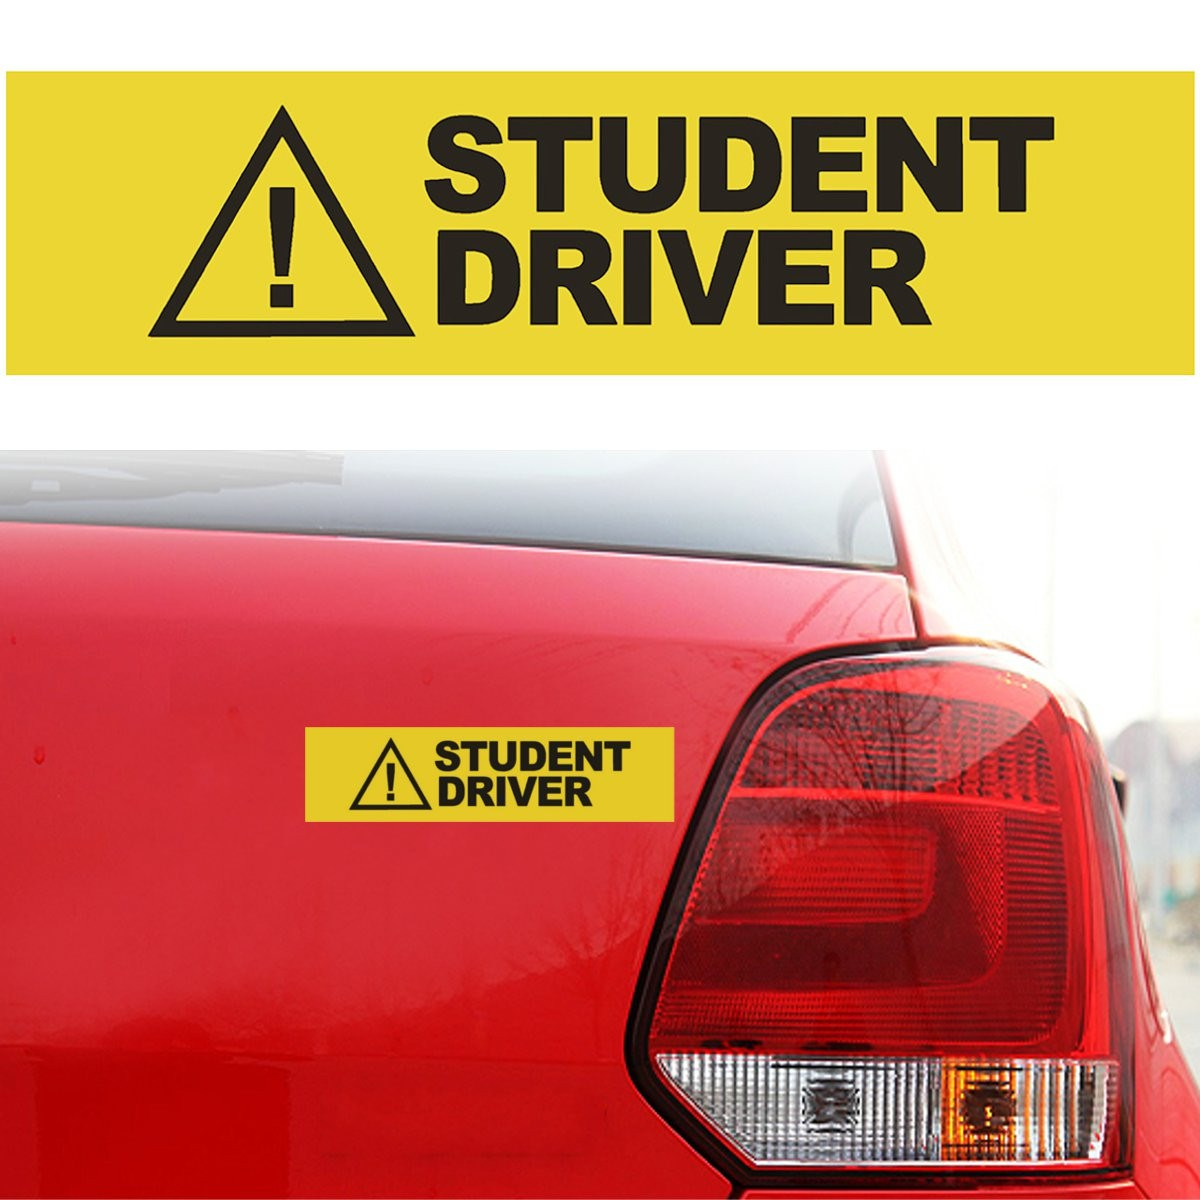 30 x 7.5cm Yellow Caution Student Driver Car Vehicle Magnetic Reflective Sign Safety Decal